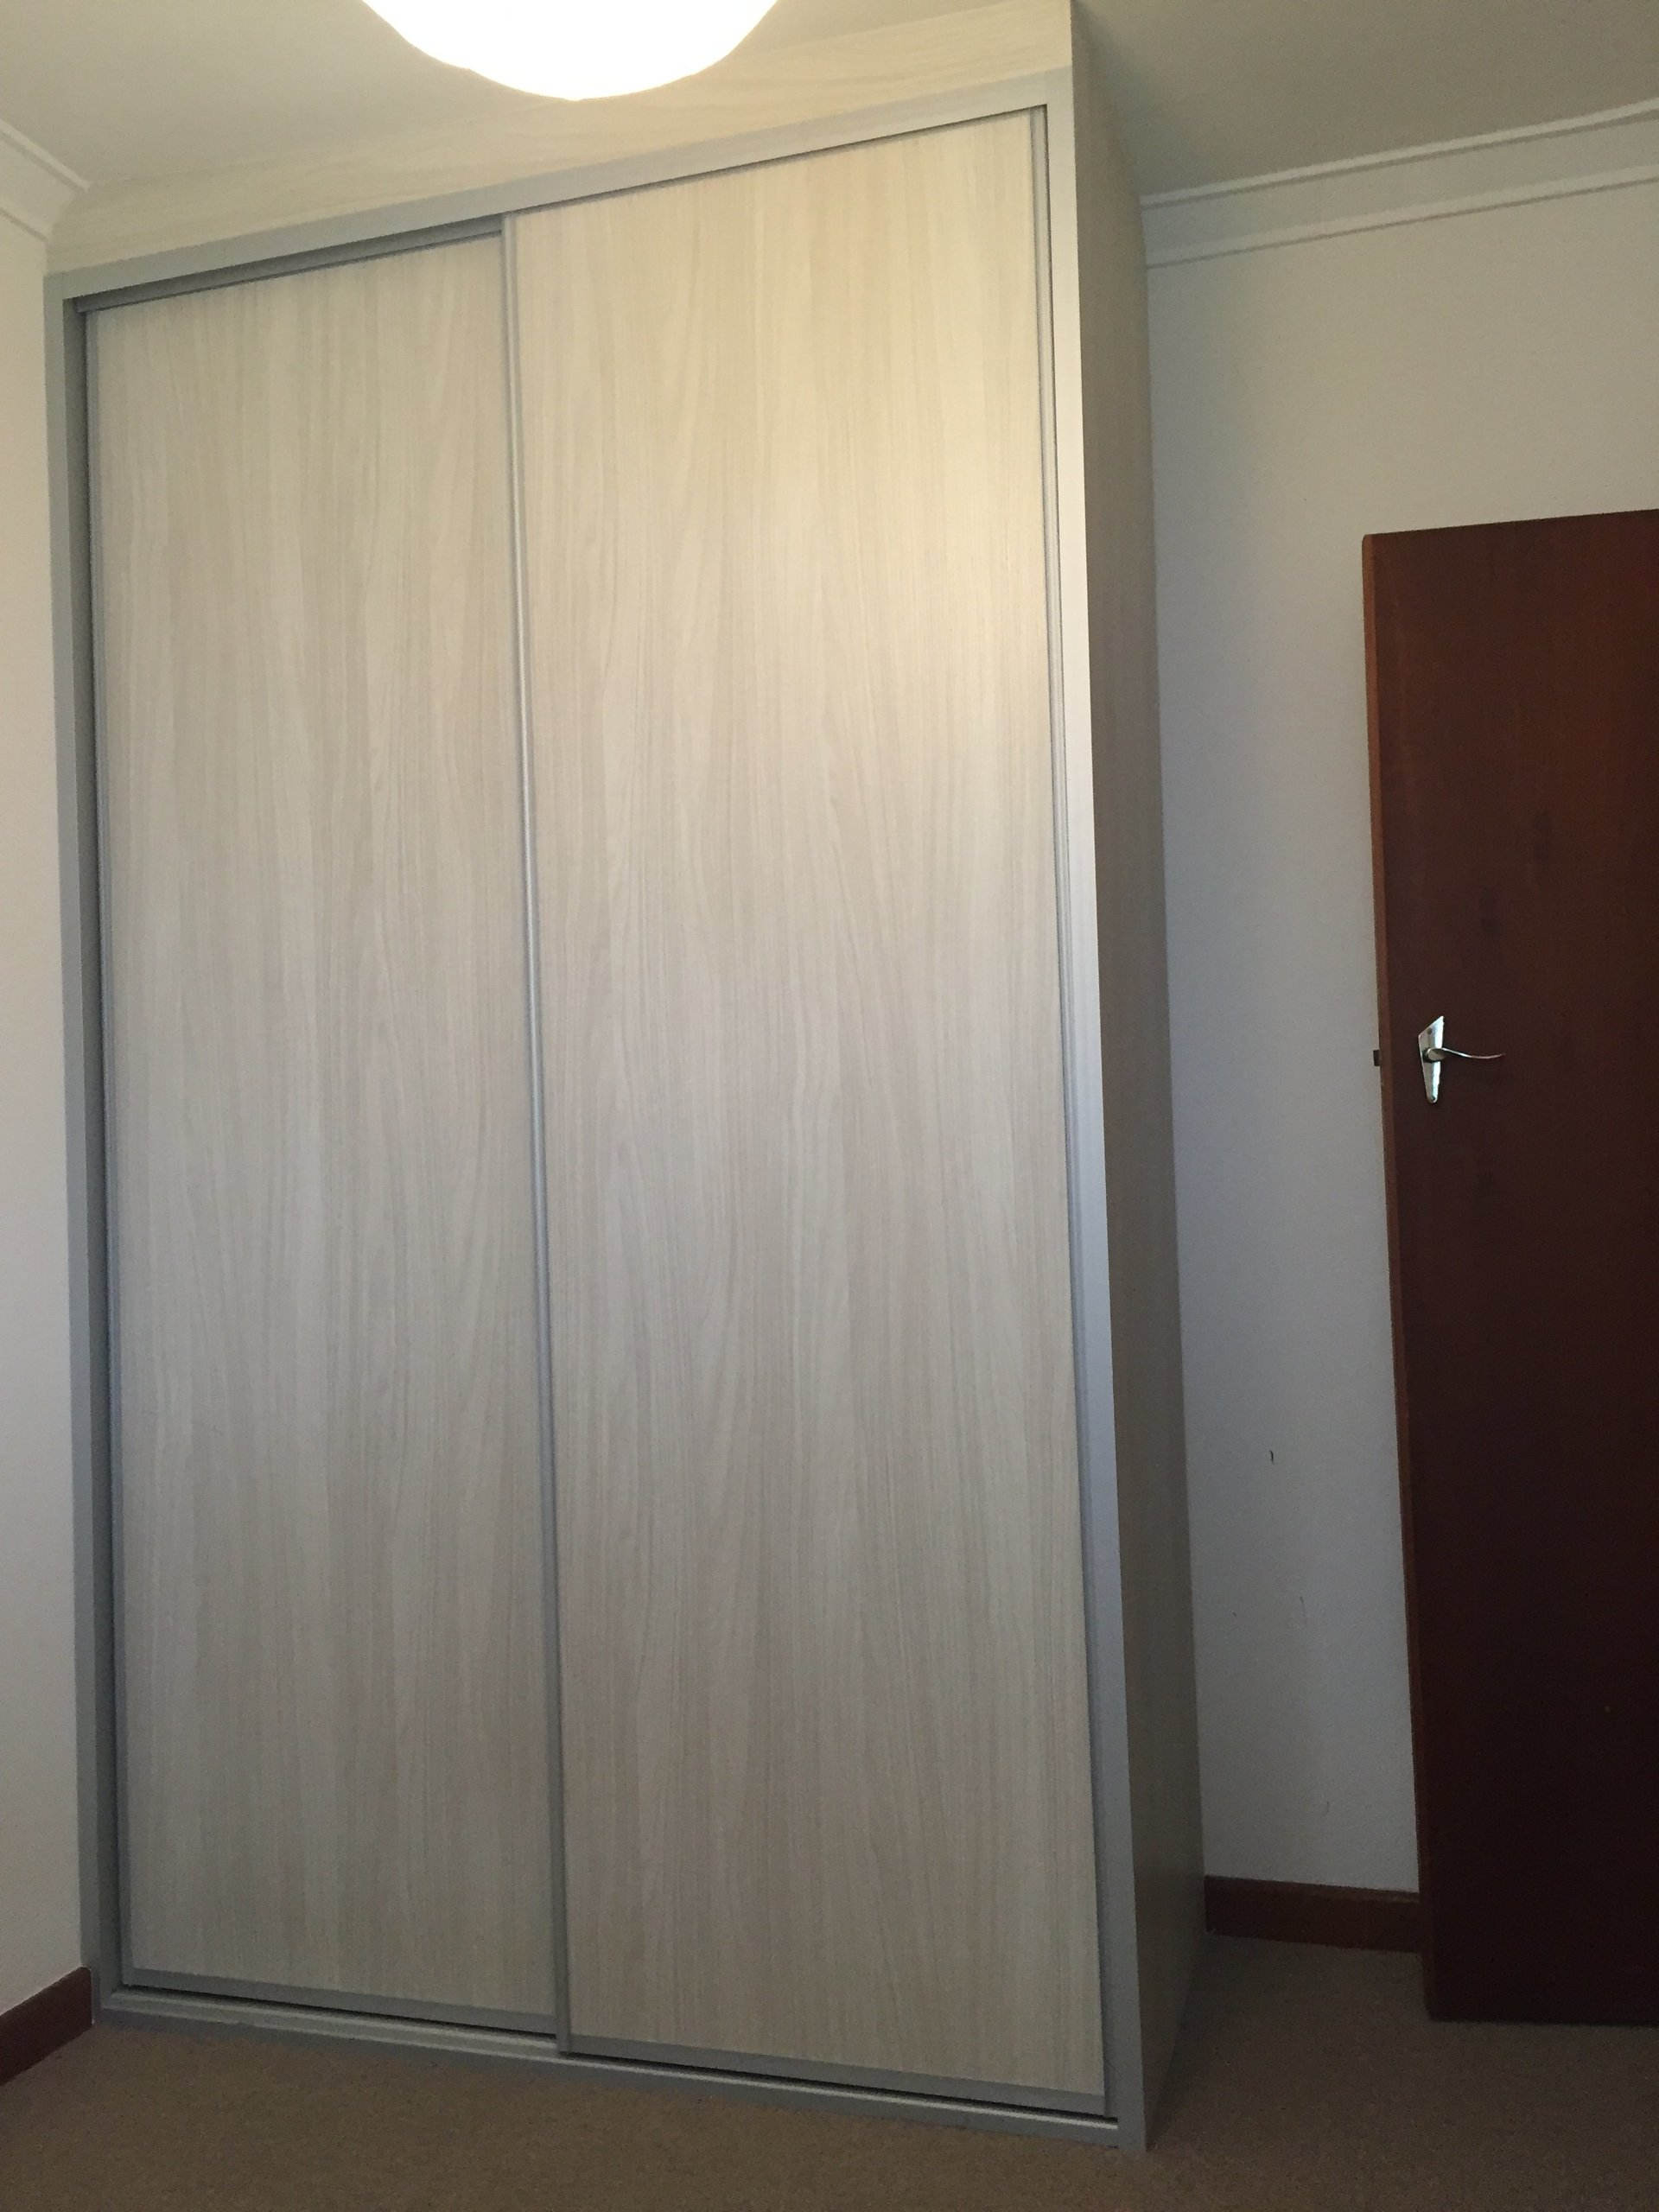 built what please our closet wardrobe pictures in examples as produce just pin made closets through we you find will gallery custom a few wardrobes of view here